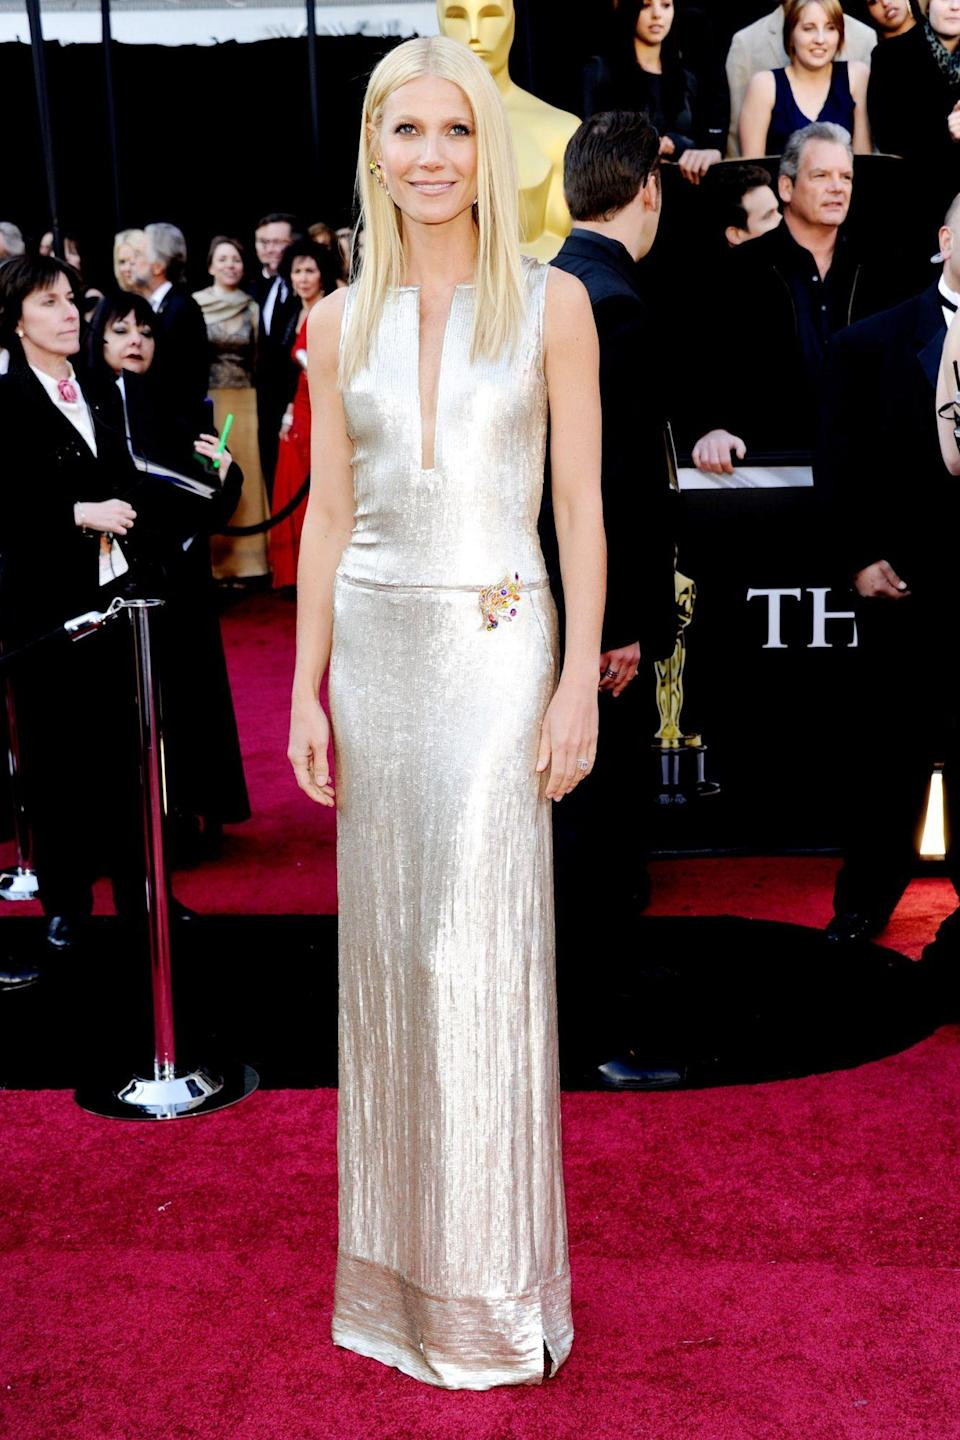 """<p>Gwyneth Paltrow dazzled in silver Calvin Klein Collection on the red carpet. She may look calm and collected, but the star <a href=""""https://variety.com/2019/film/news/gwyneth-paltrow-singing-oscars-country-strong-1203147436/"""" rel=""""nofollow noopener"""" target=""""_blank"""" data-ylk=""""slk:admitted"""" class=""""link rapid-noclick-resp"""">admitted</a> that the 2011 Oscars were responsible for """"the most terrifying moment"""" of her life: Her performance of """"Coming Home"""" from <em>Country Strong</em>, which was nominated for Best Original Song. </p>"""